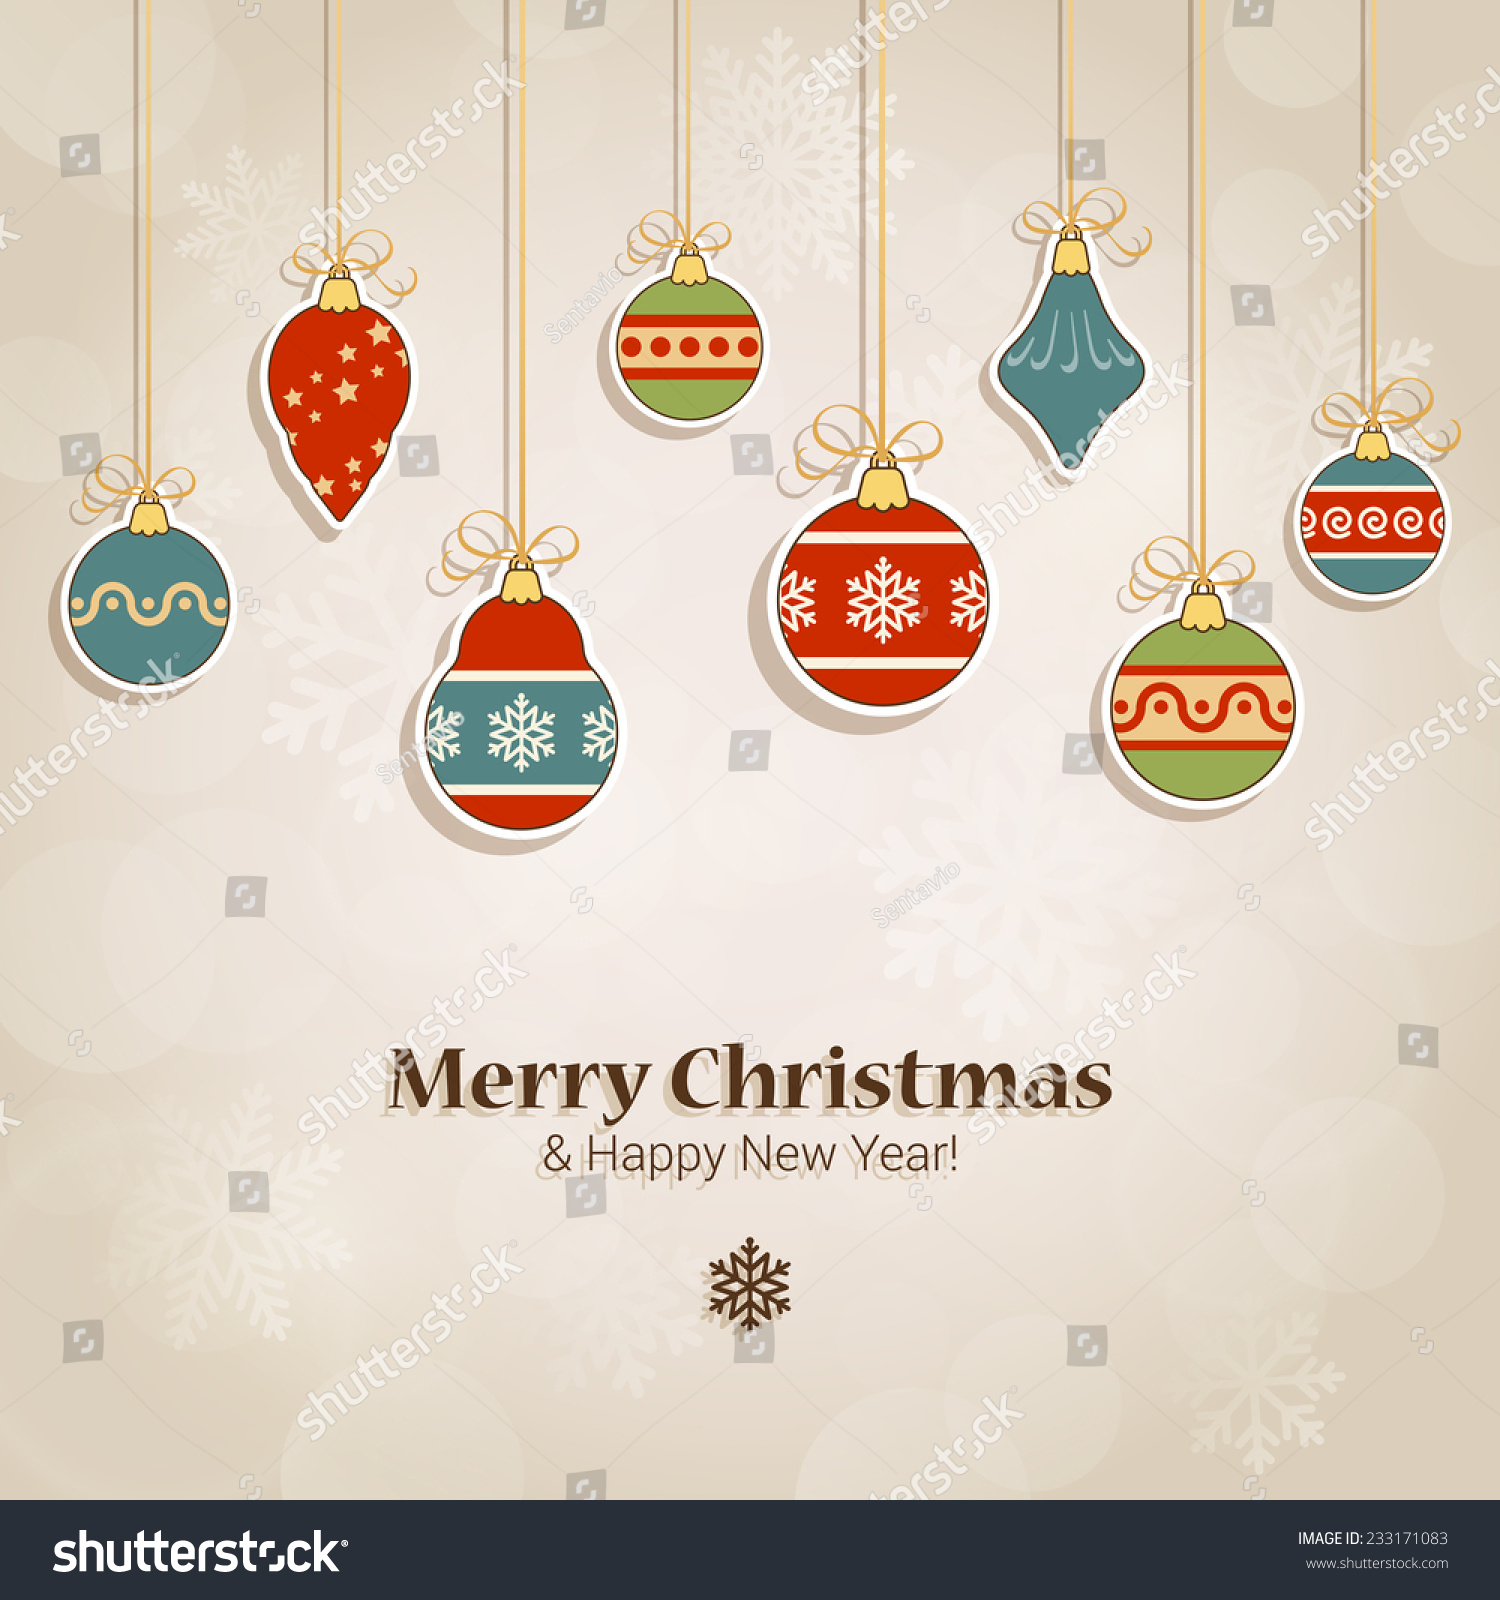 Christmas Postcard Template Label Style Fir Stock Vector - Christmas postcard template